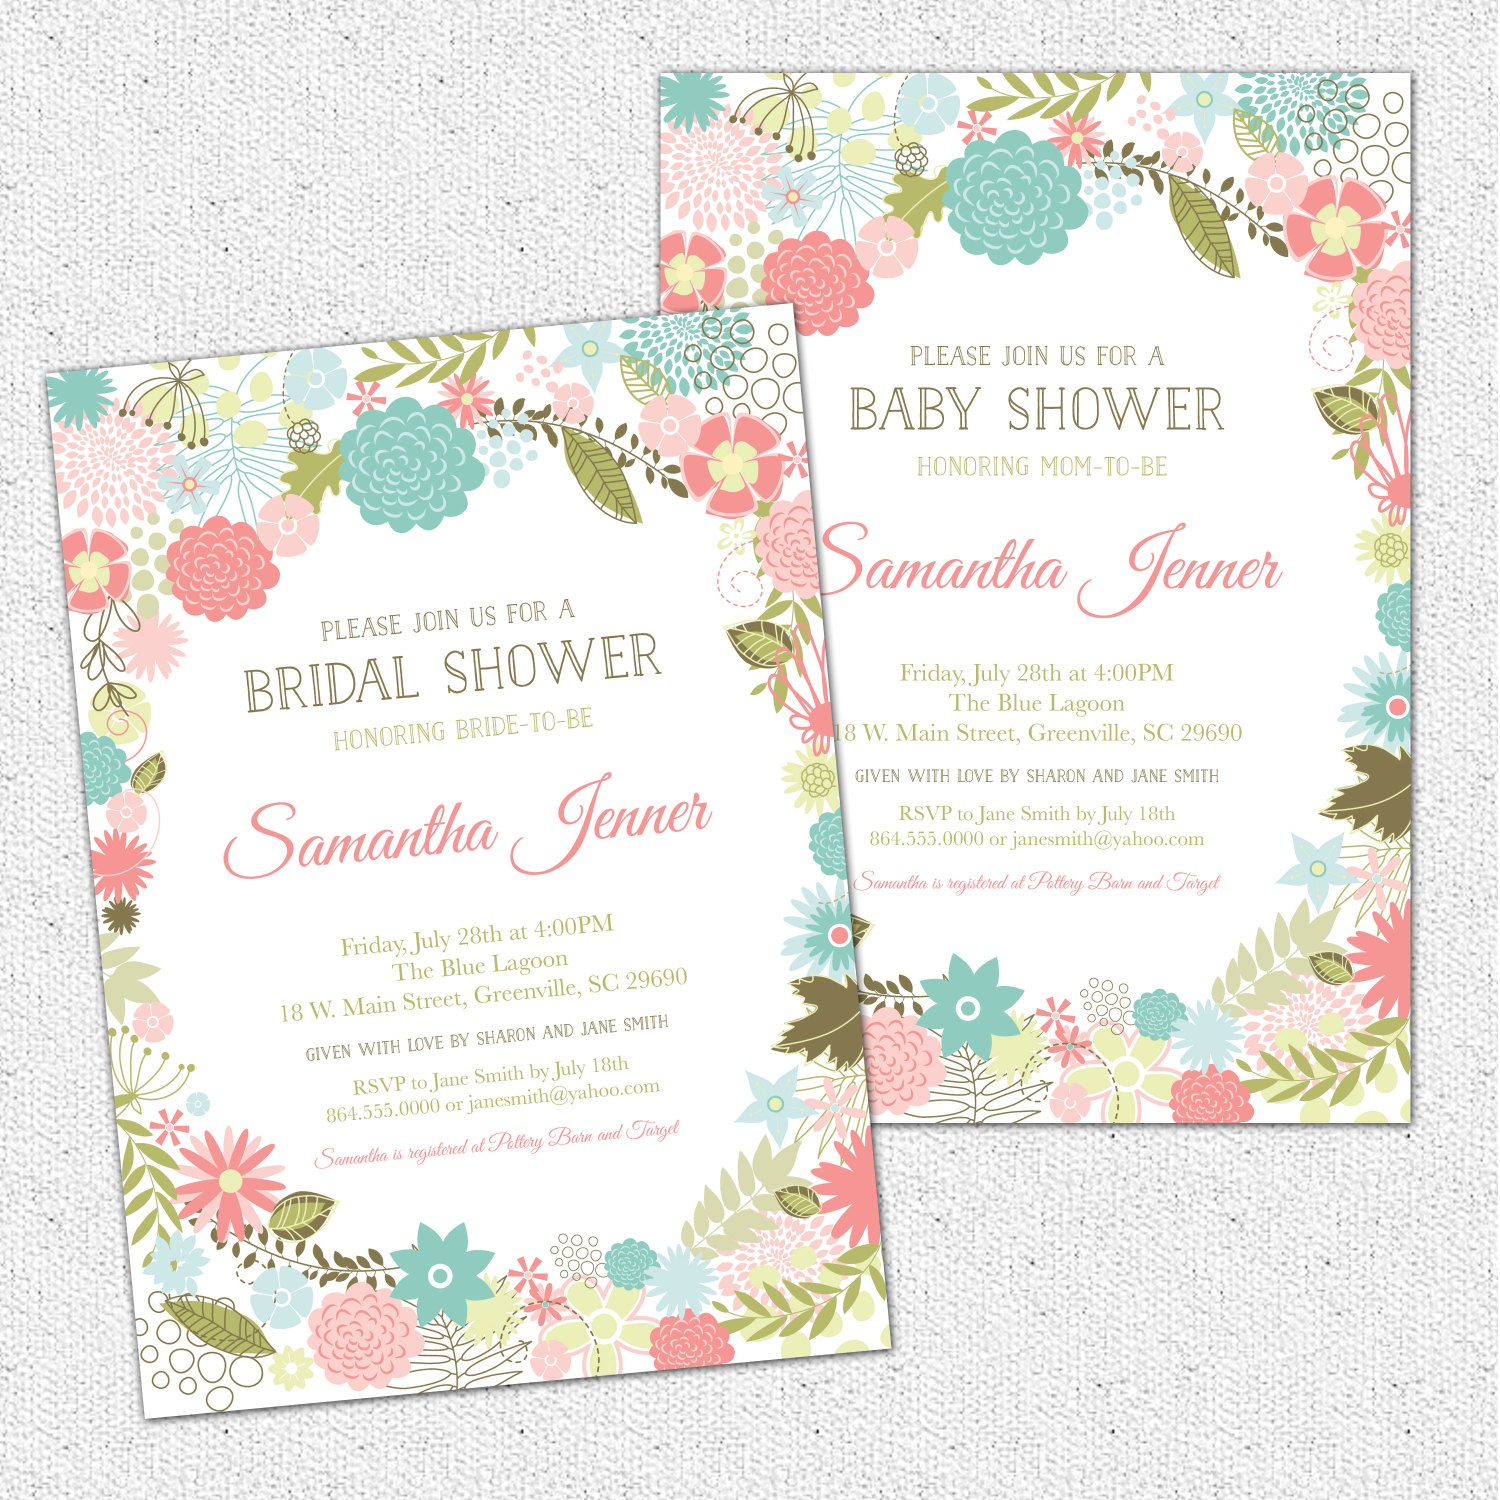 Retro Modern Flowers Bridal Baby Shower Invitations, Floral, Garden ...